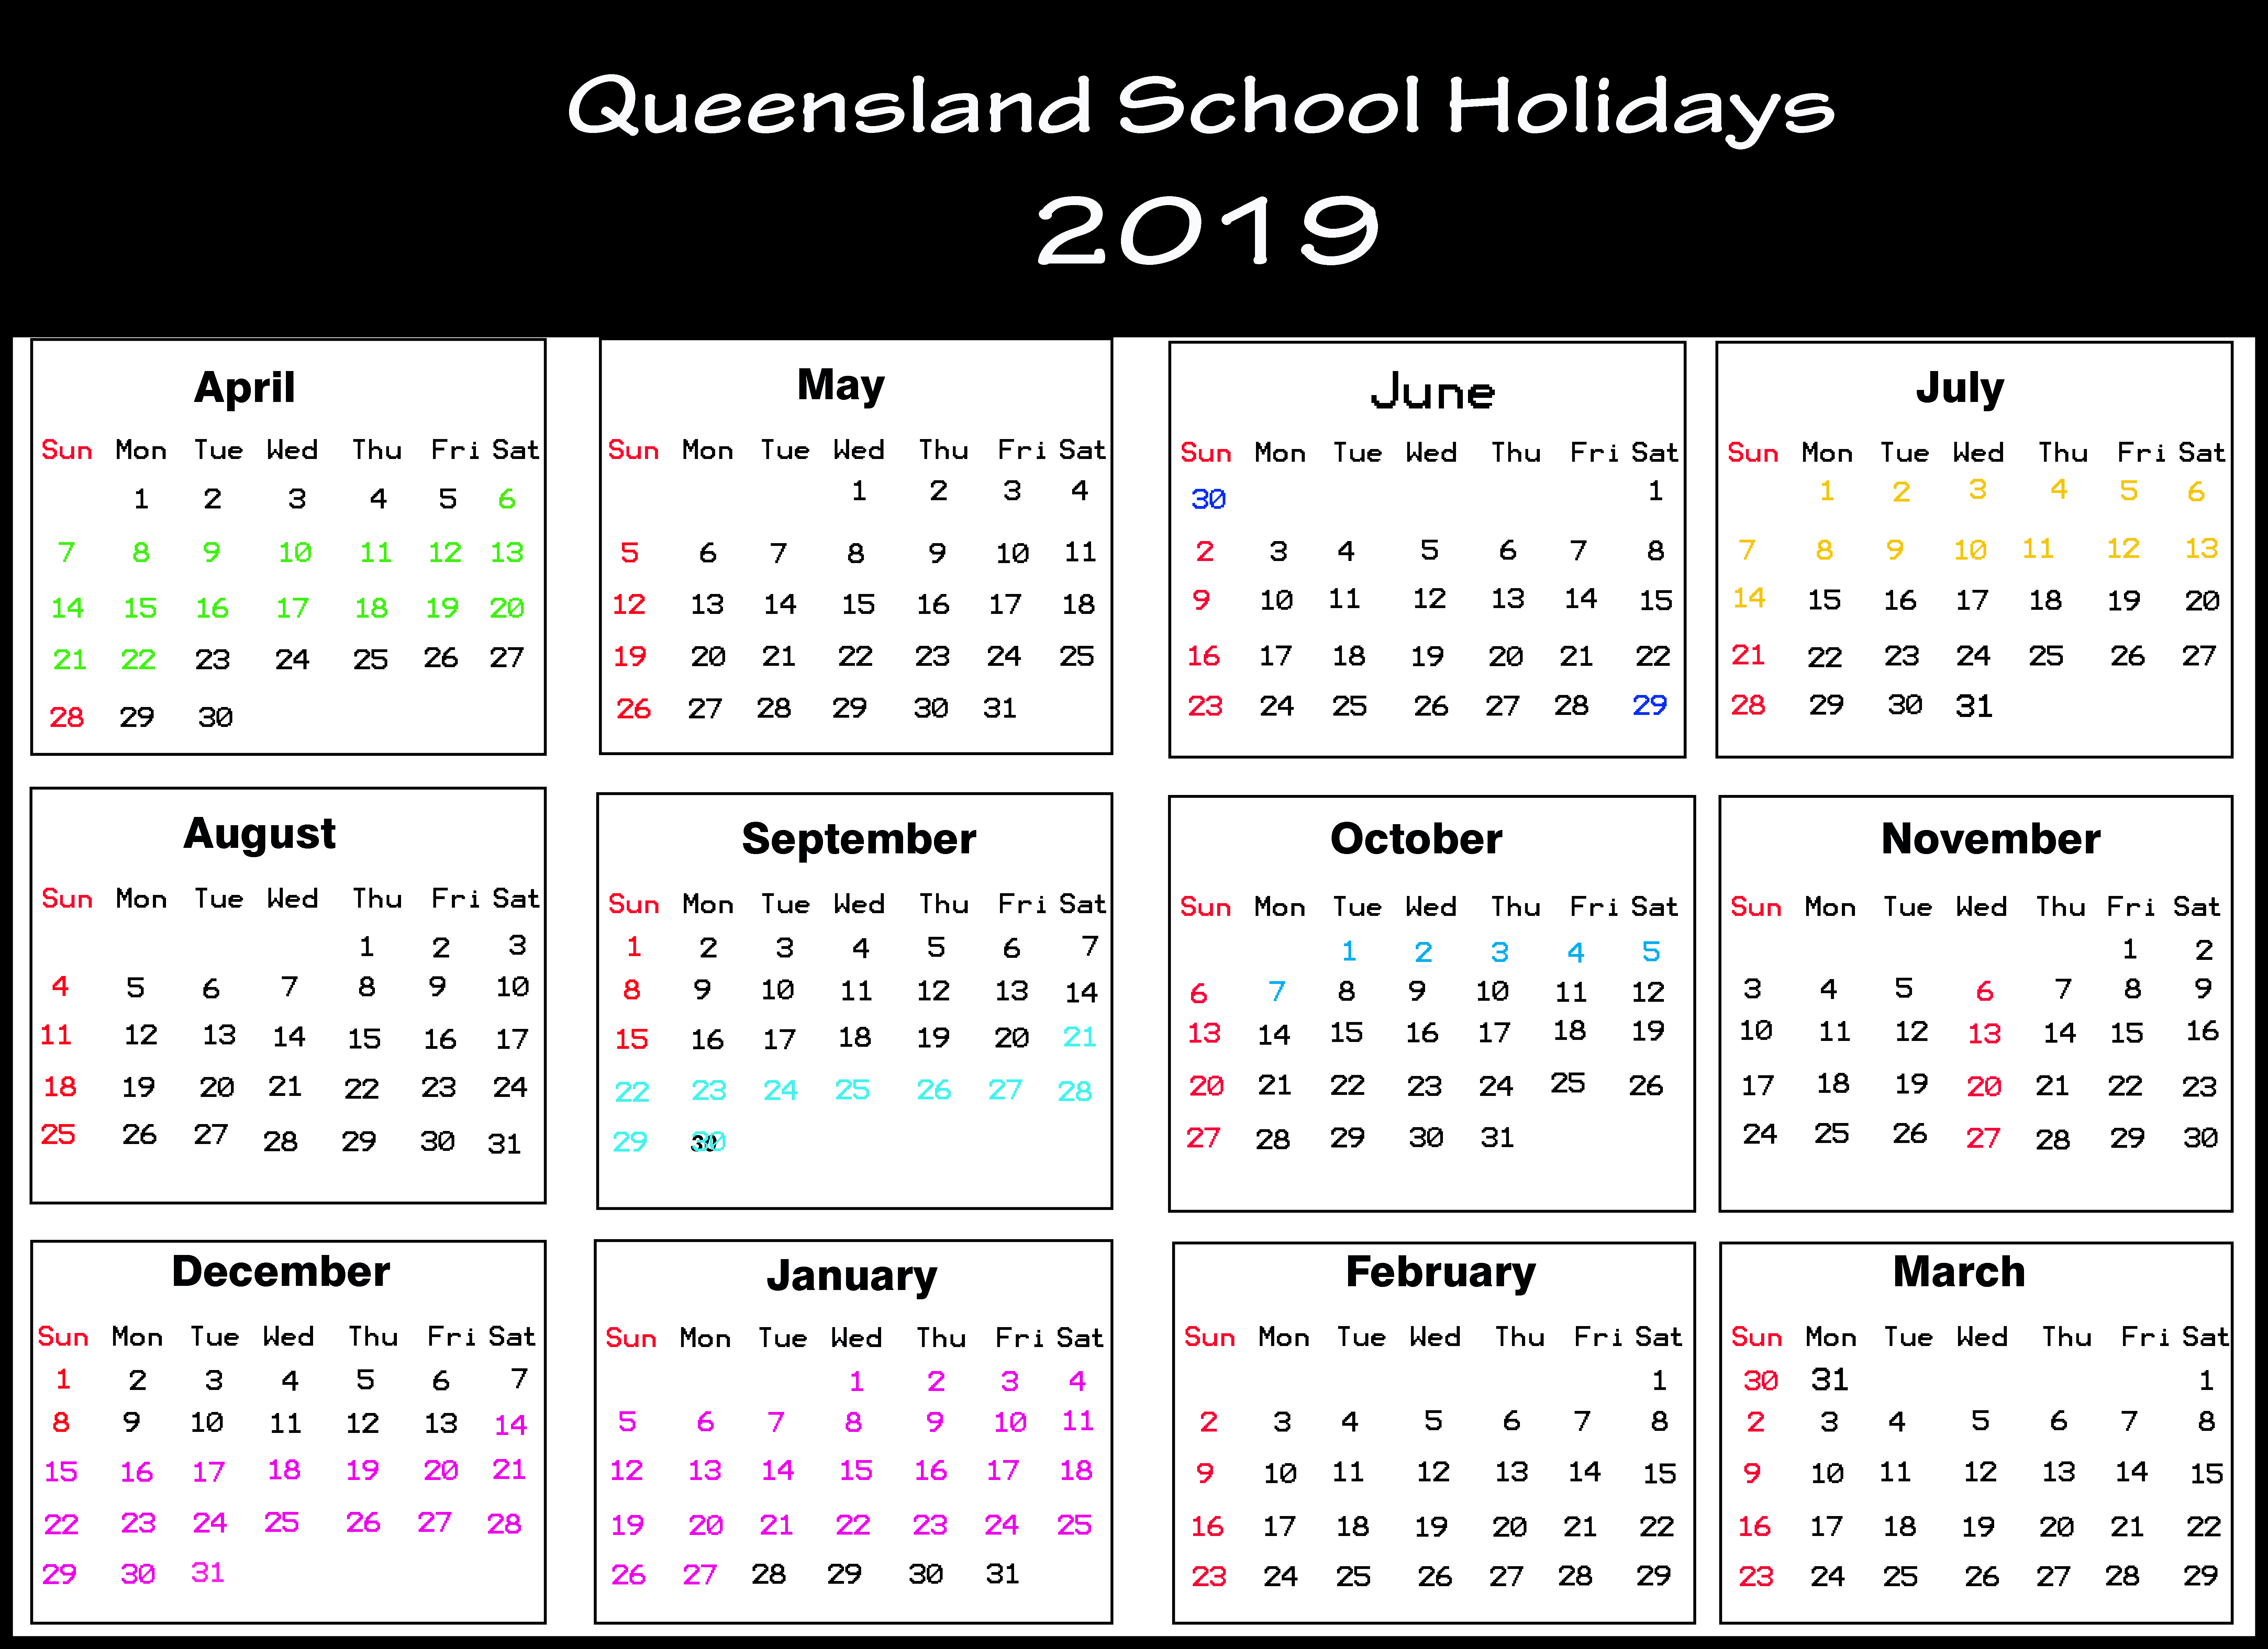 Qld School Holidays Calendar 2019 [Holiday Dates 2019]